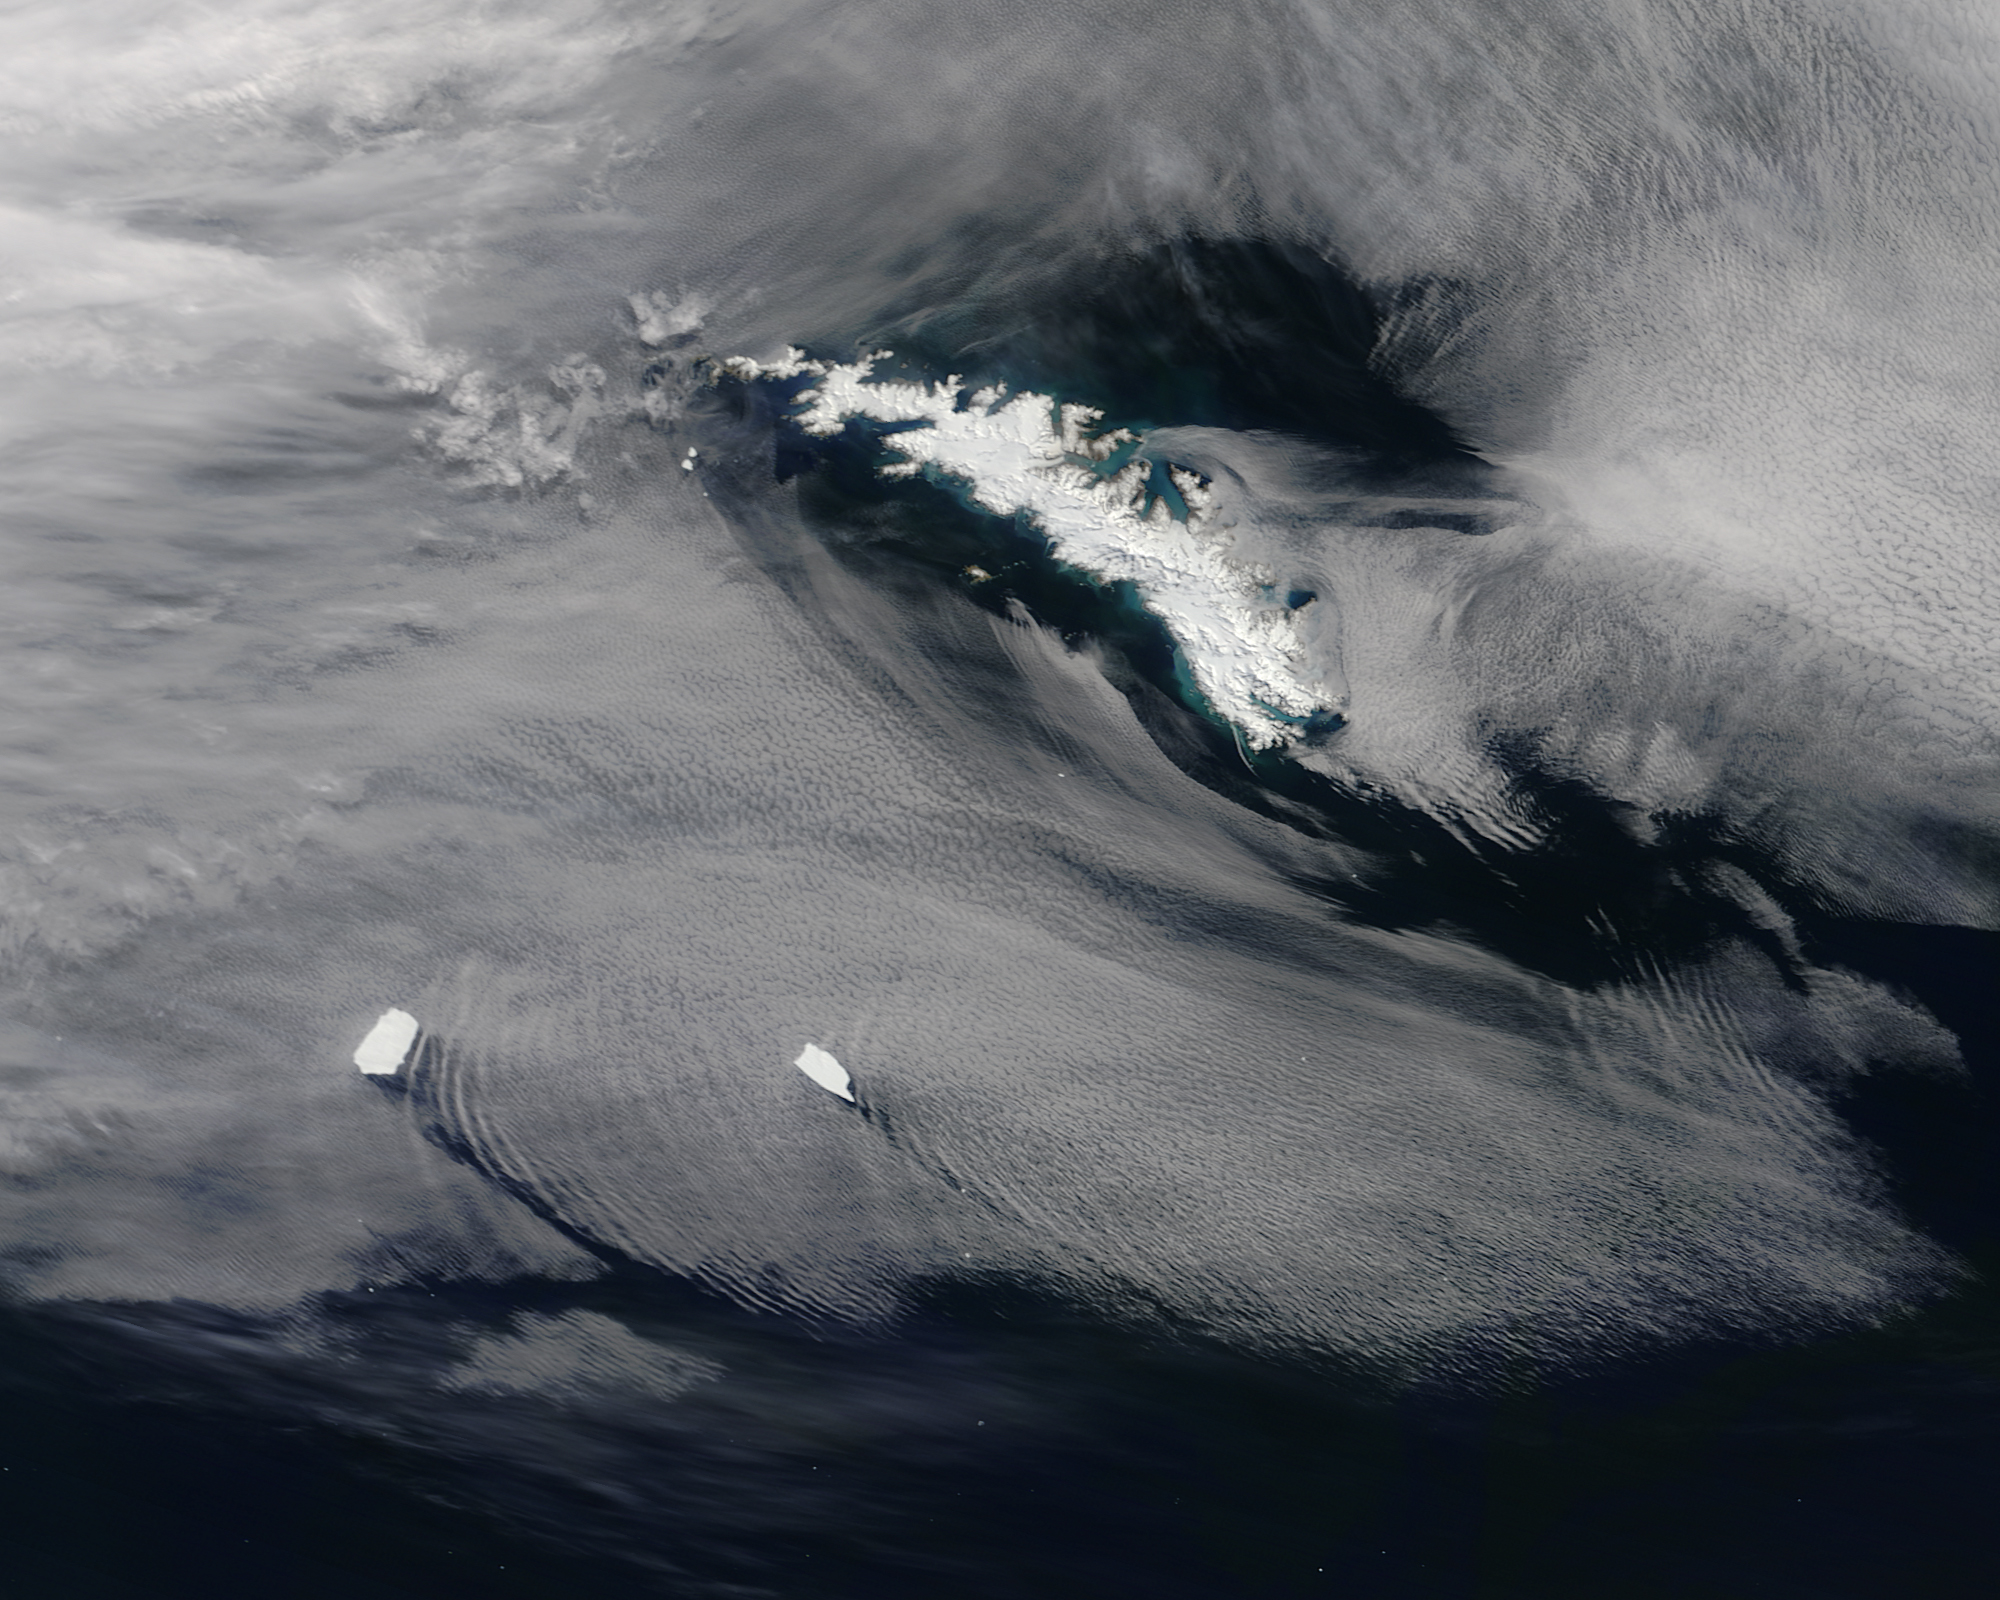 Today's Image of the Day comes from the NASA Earth Observatory and features a look at icebergs off the coast of South Georgia Island.